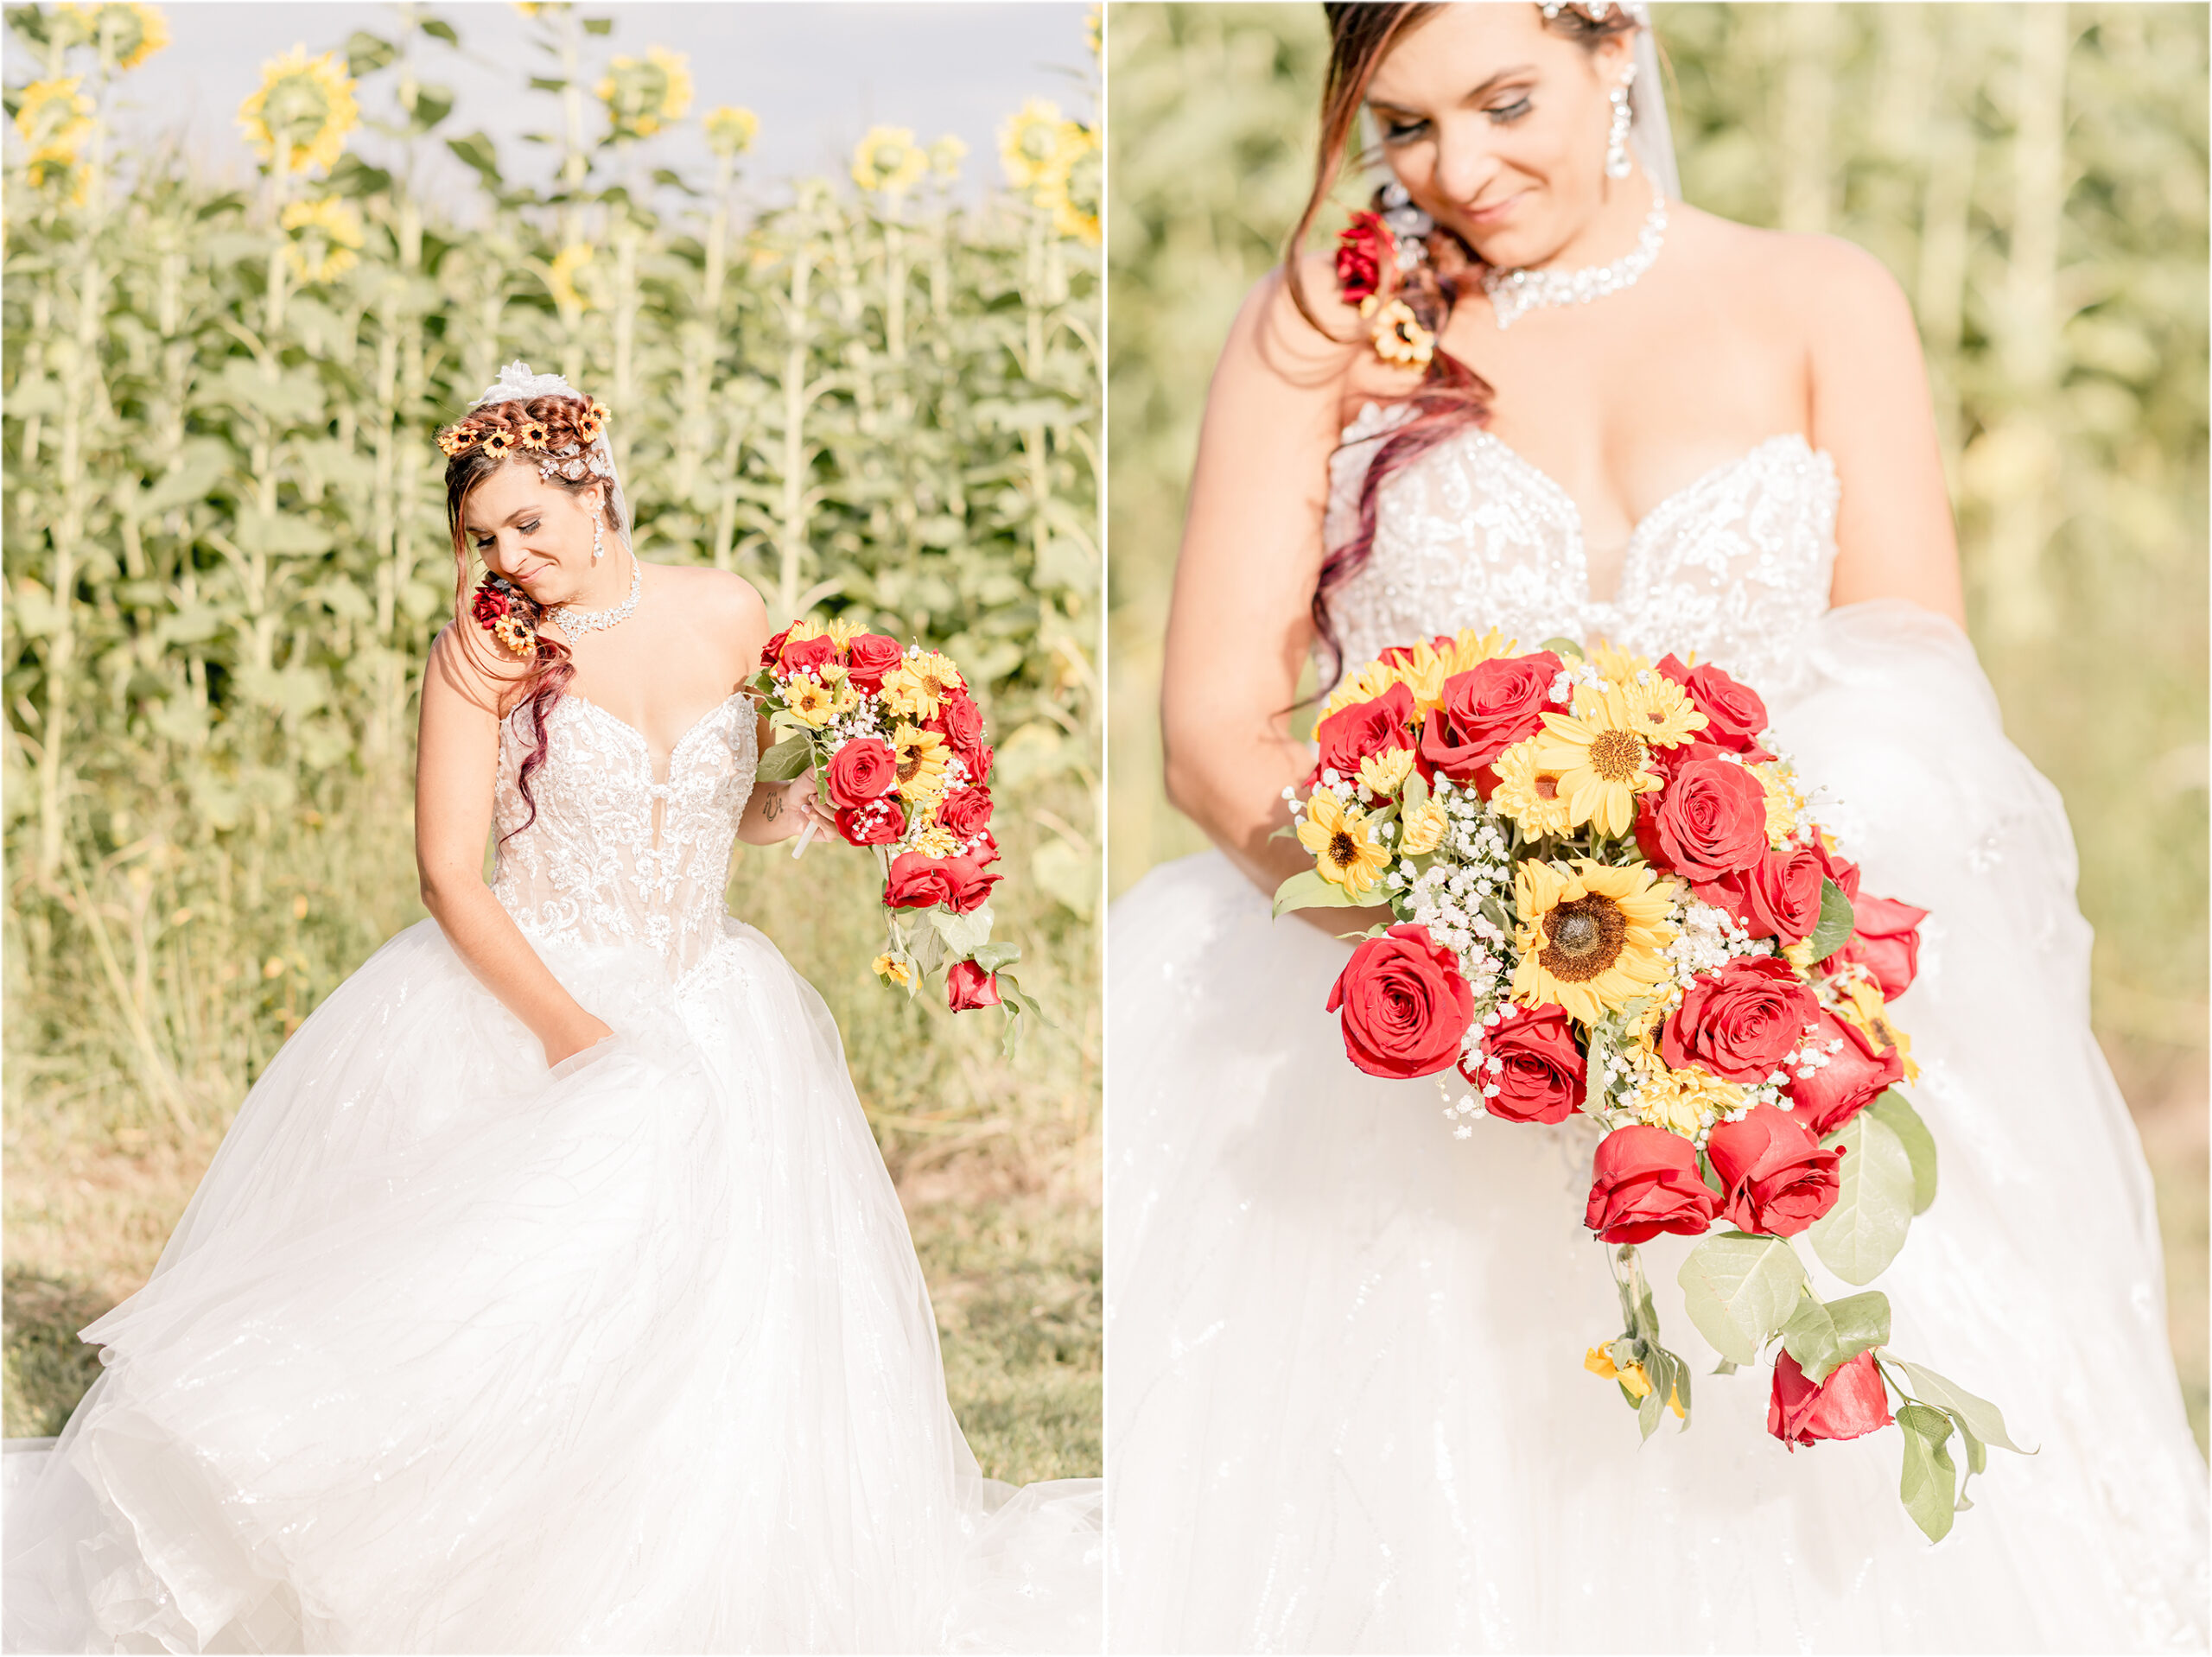 Lindsay-Adkins-Photography-Top10BridalBouquets2019-2